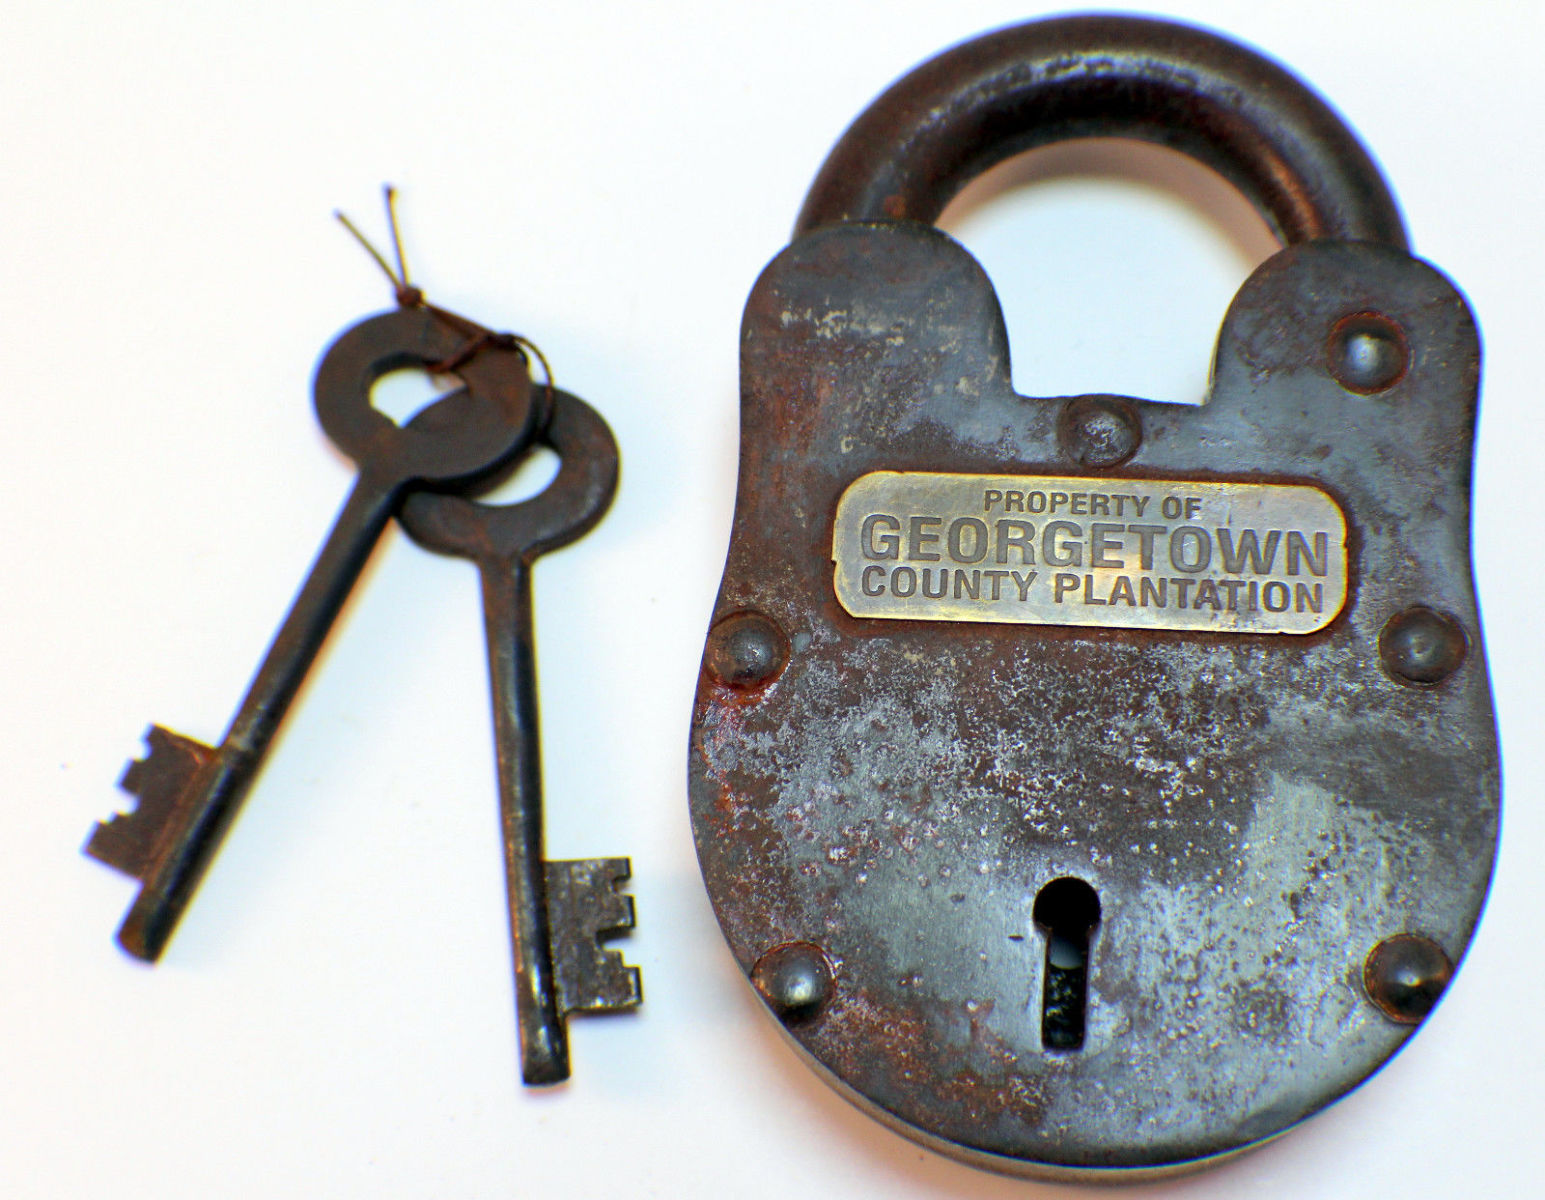 Cast iron property of georgetown county plantation padlock